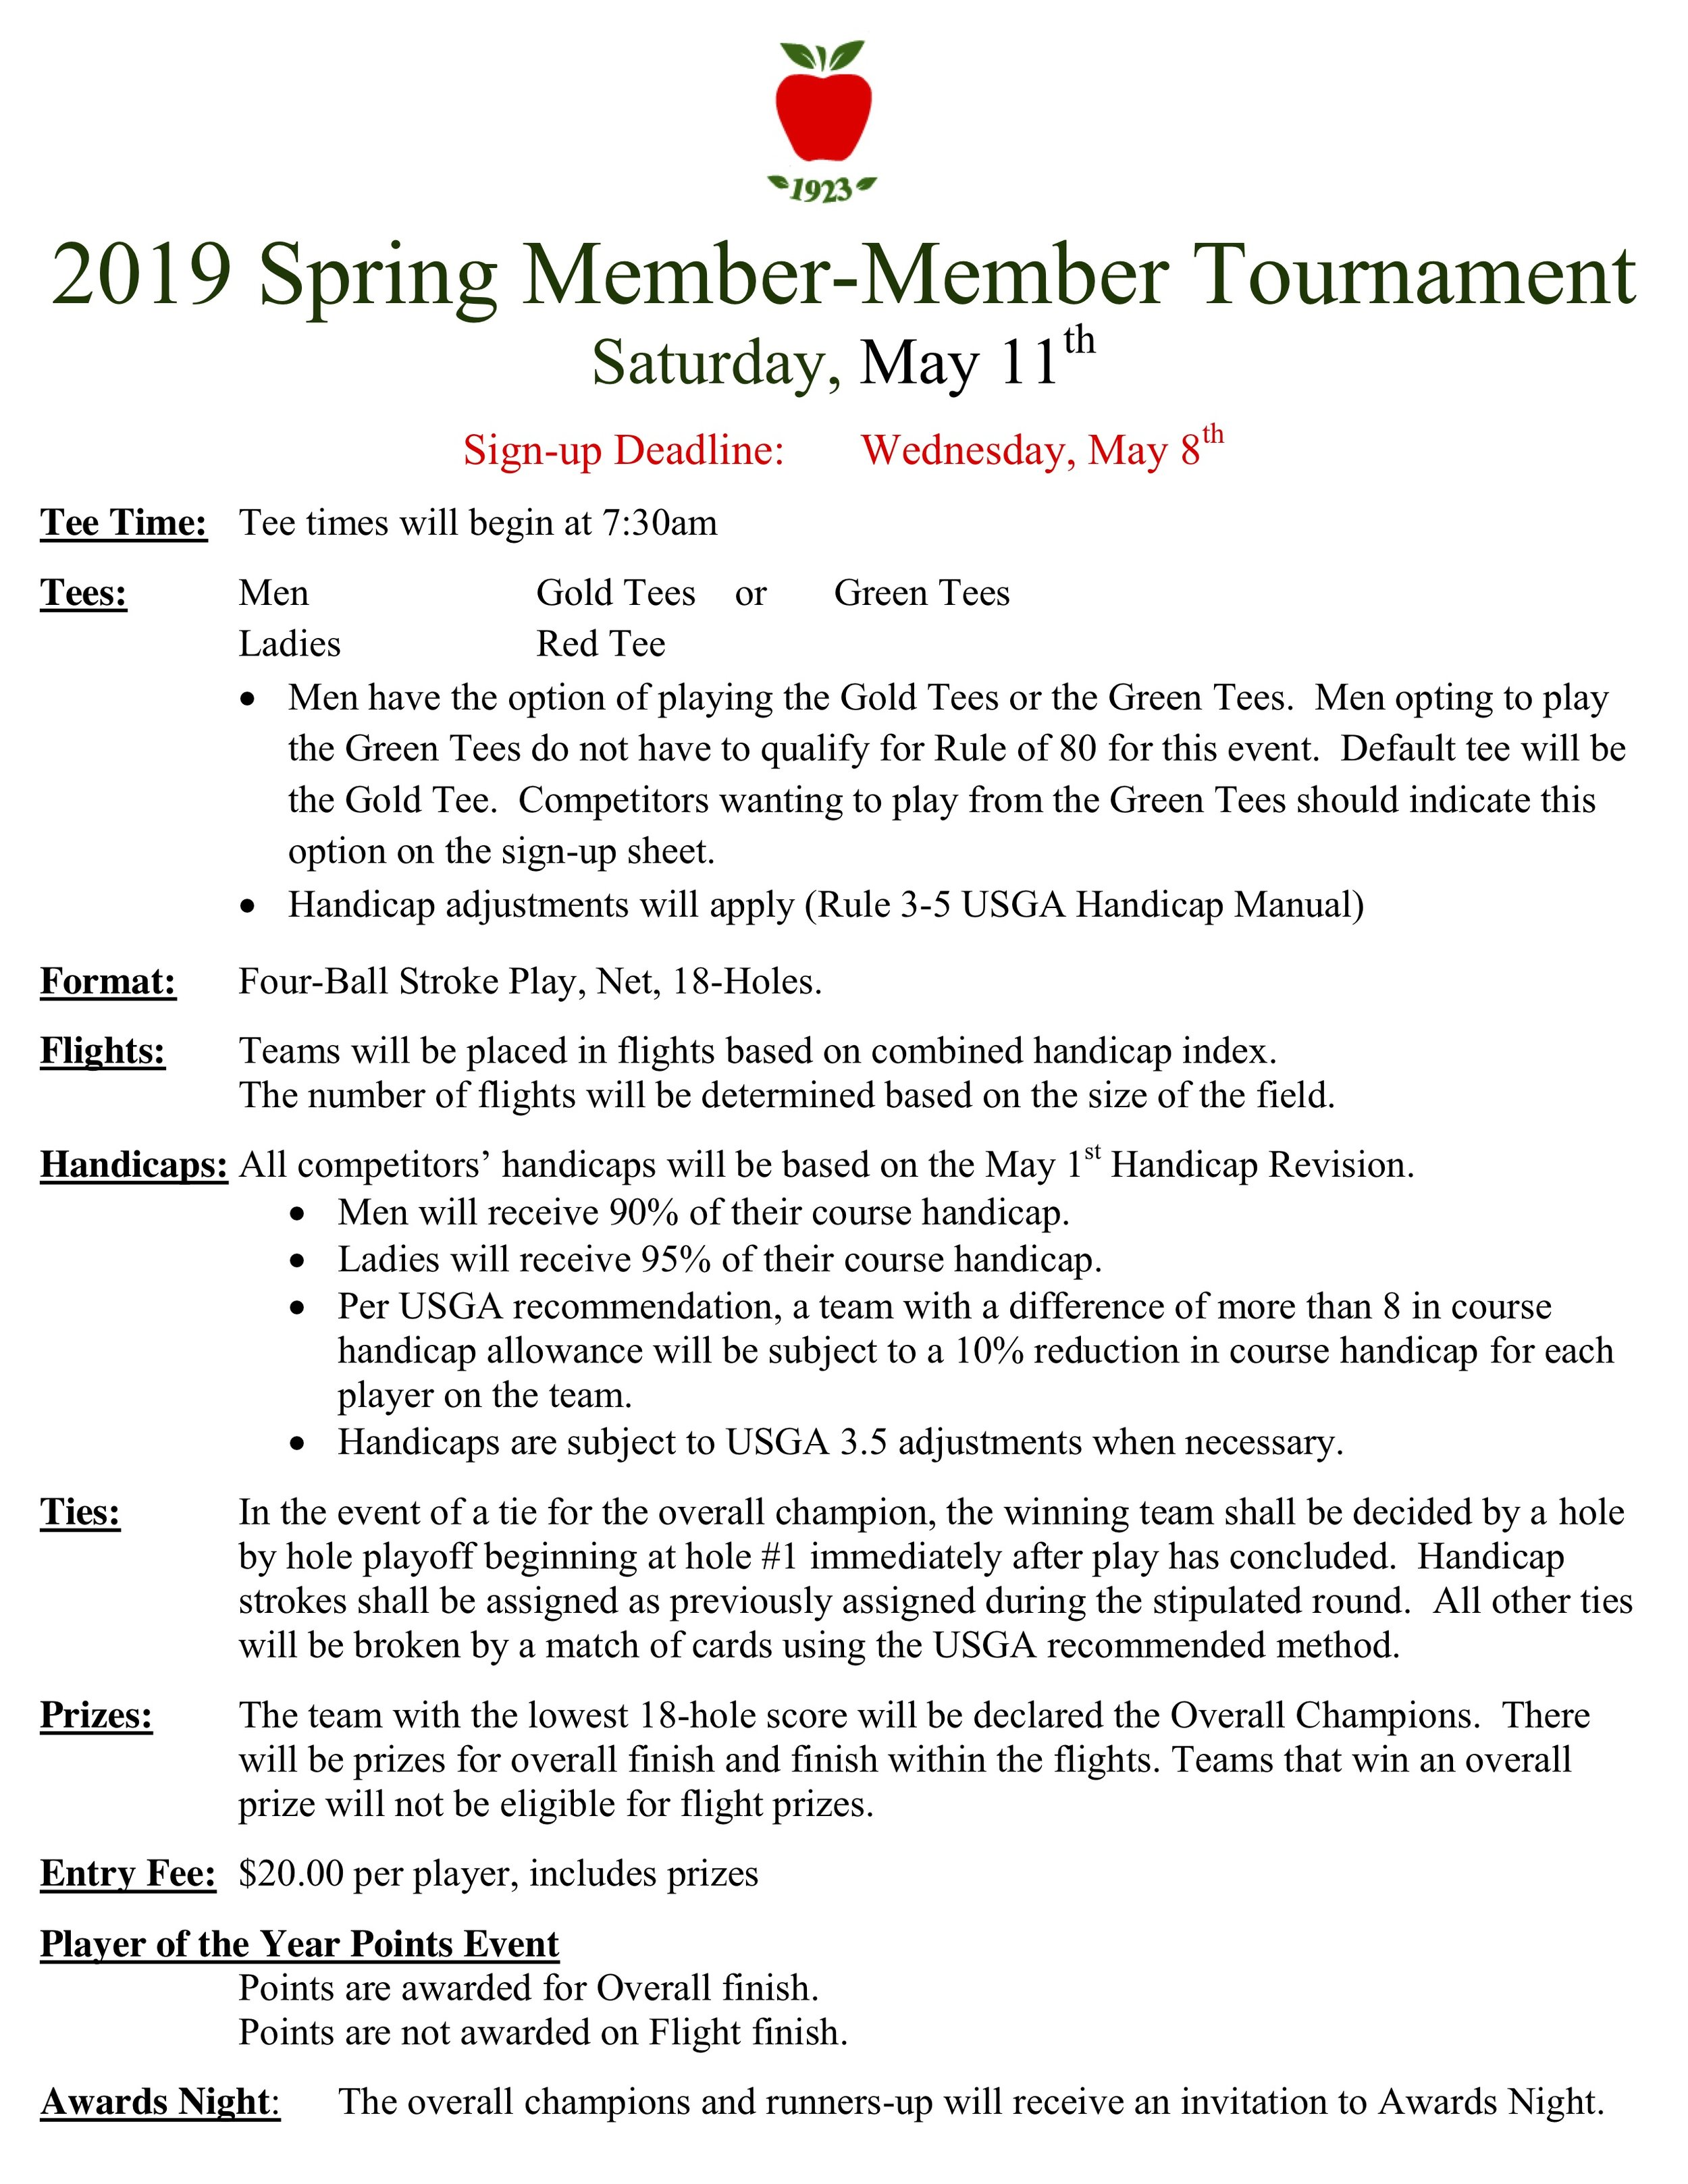 2019 spring Member-Member Tournament sign up.jpg